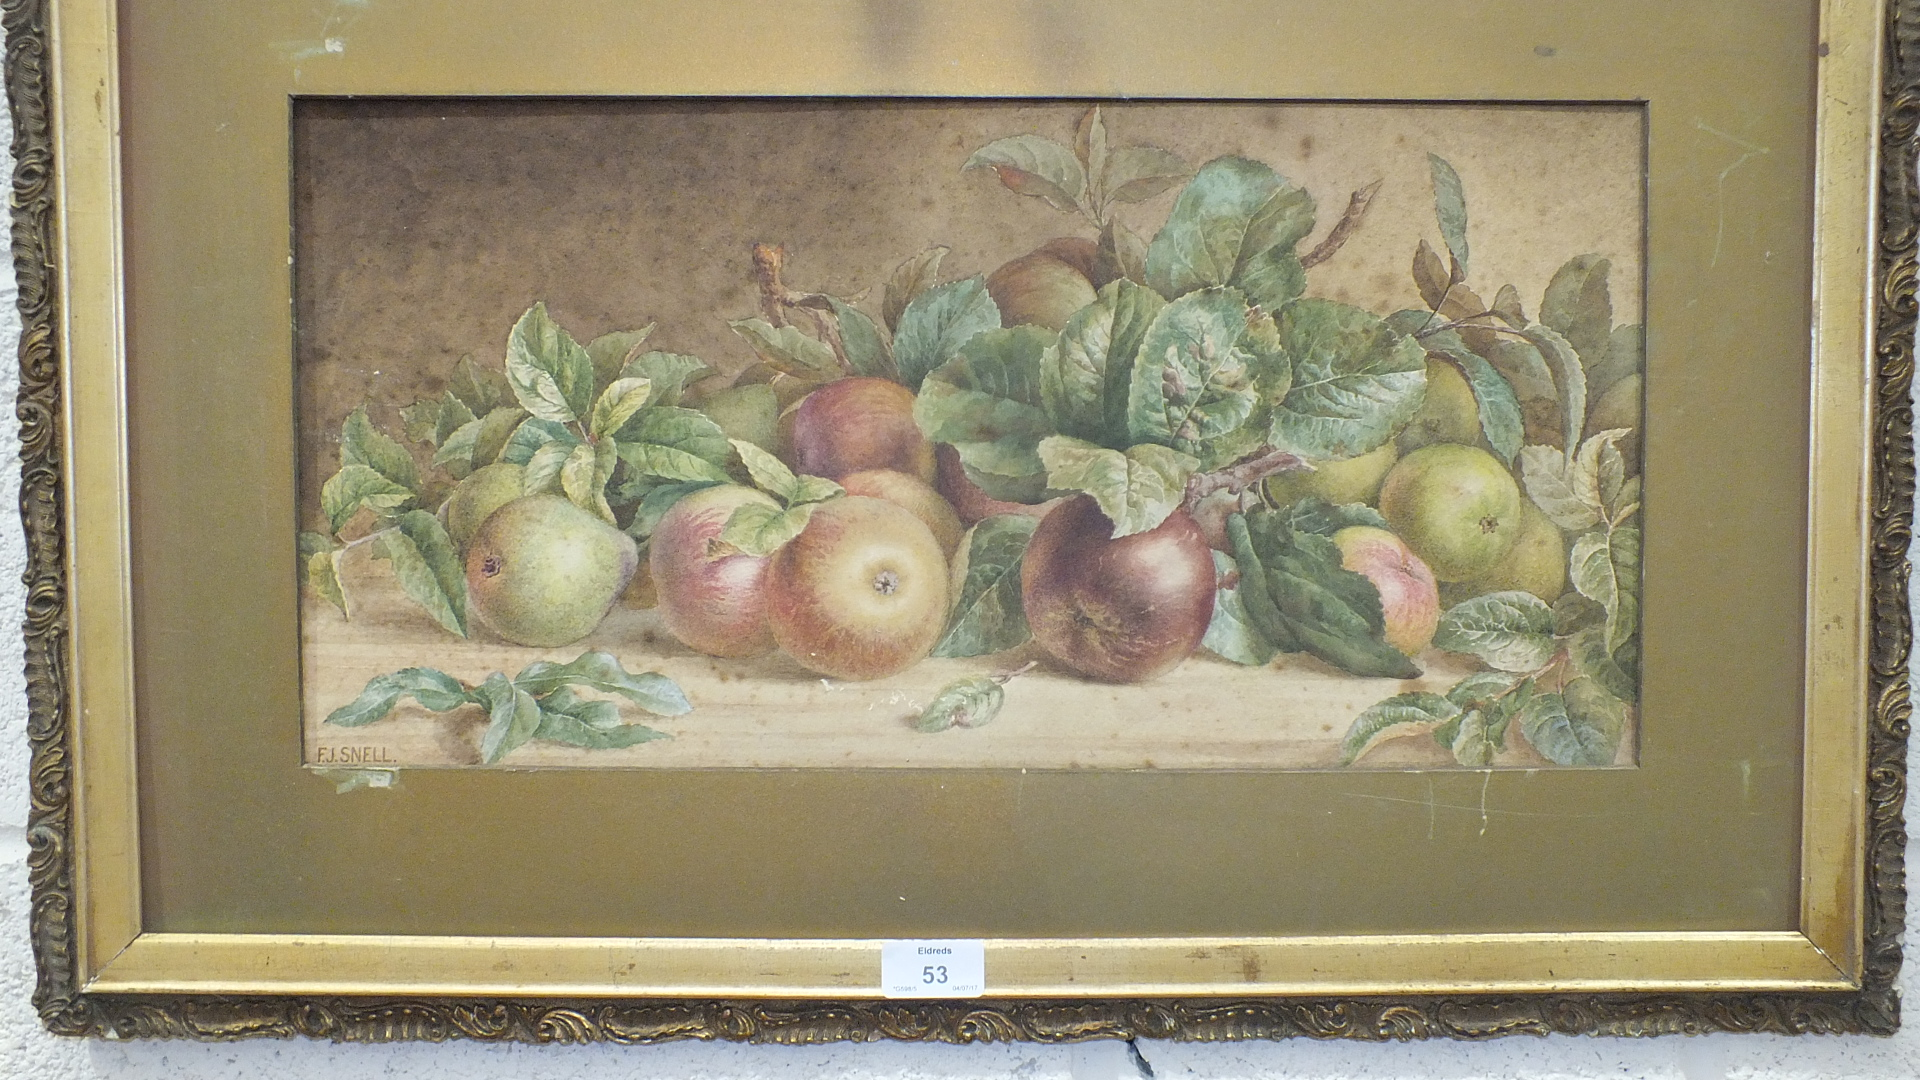 Lot 53 - F J Snell, 'Still Life, Apples', a signed watercolour, 24 x 50cm and other pictures and prints.